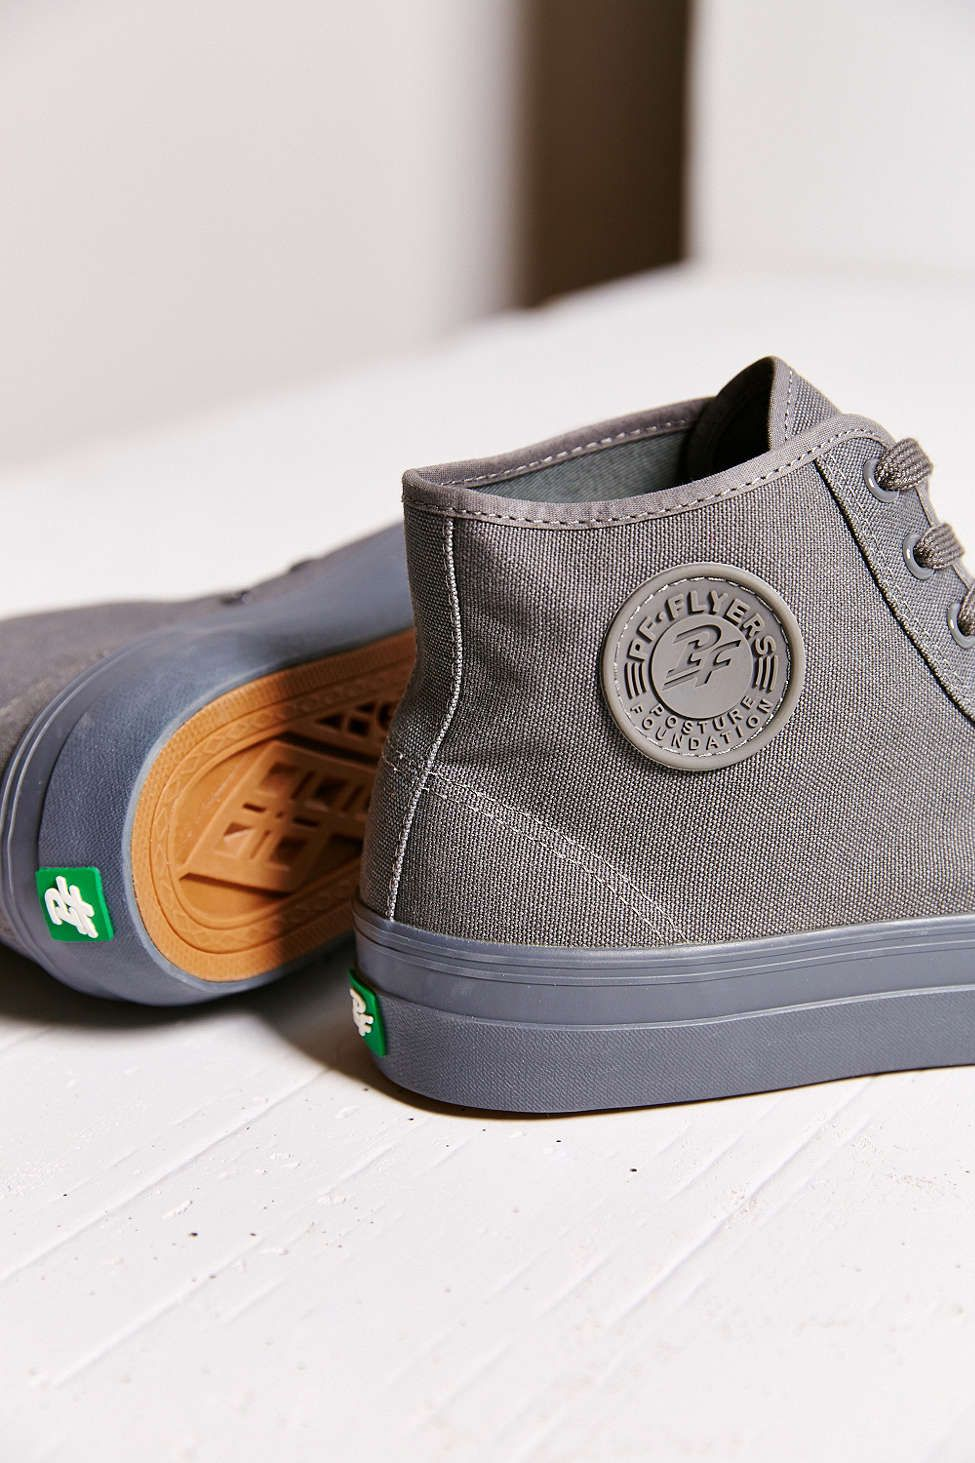 2019 year look- How to high wear top pf flyers